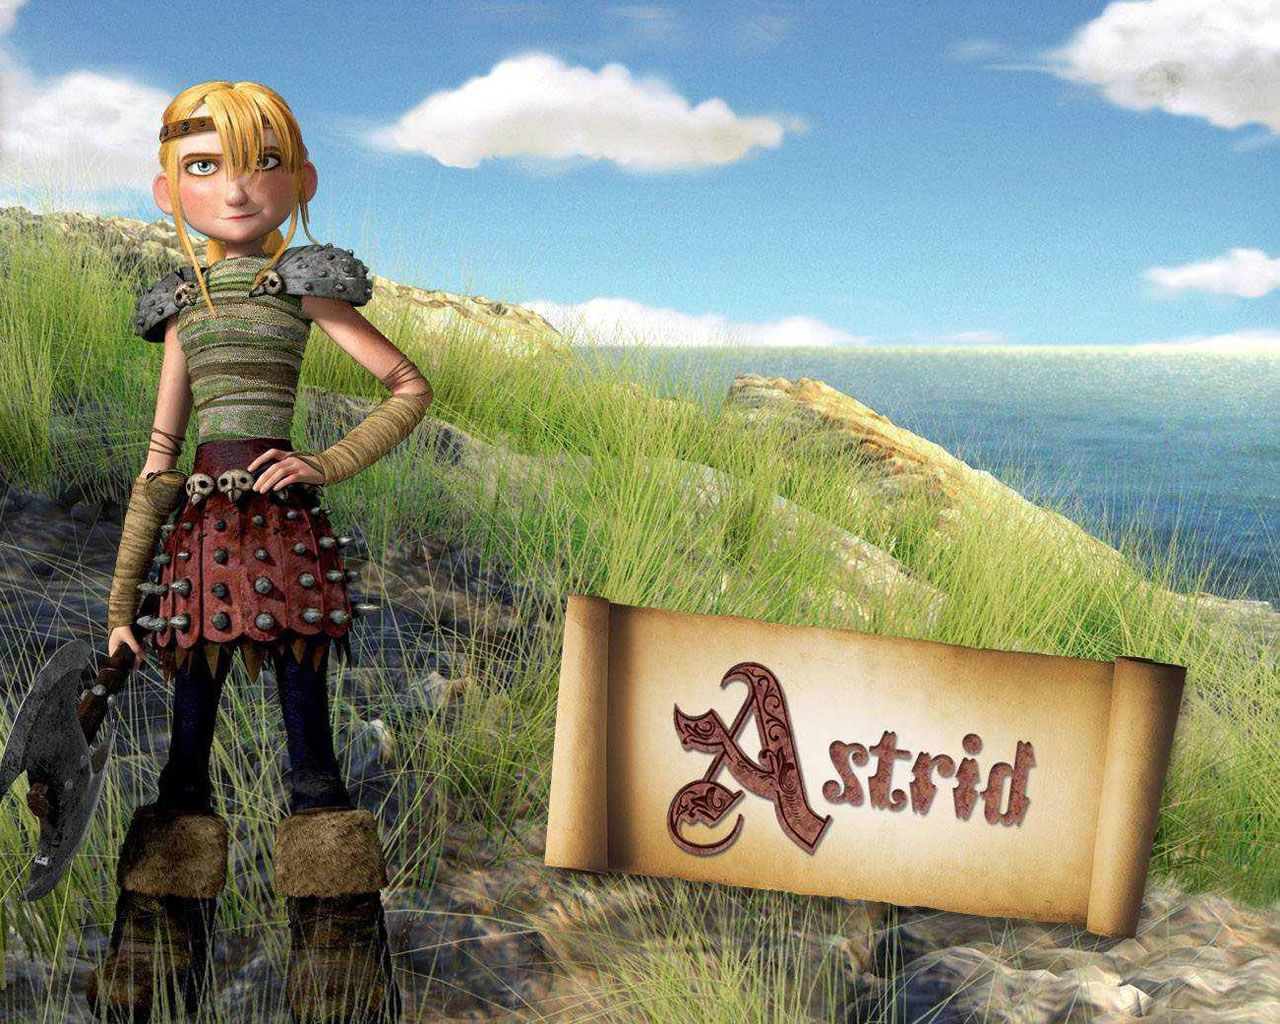 Free how to train your dragon astrid  sexy photo